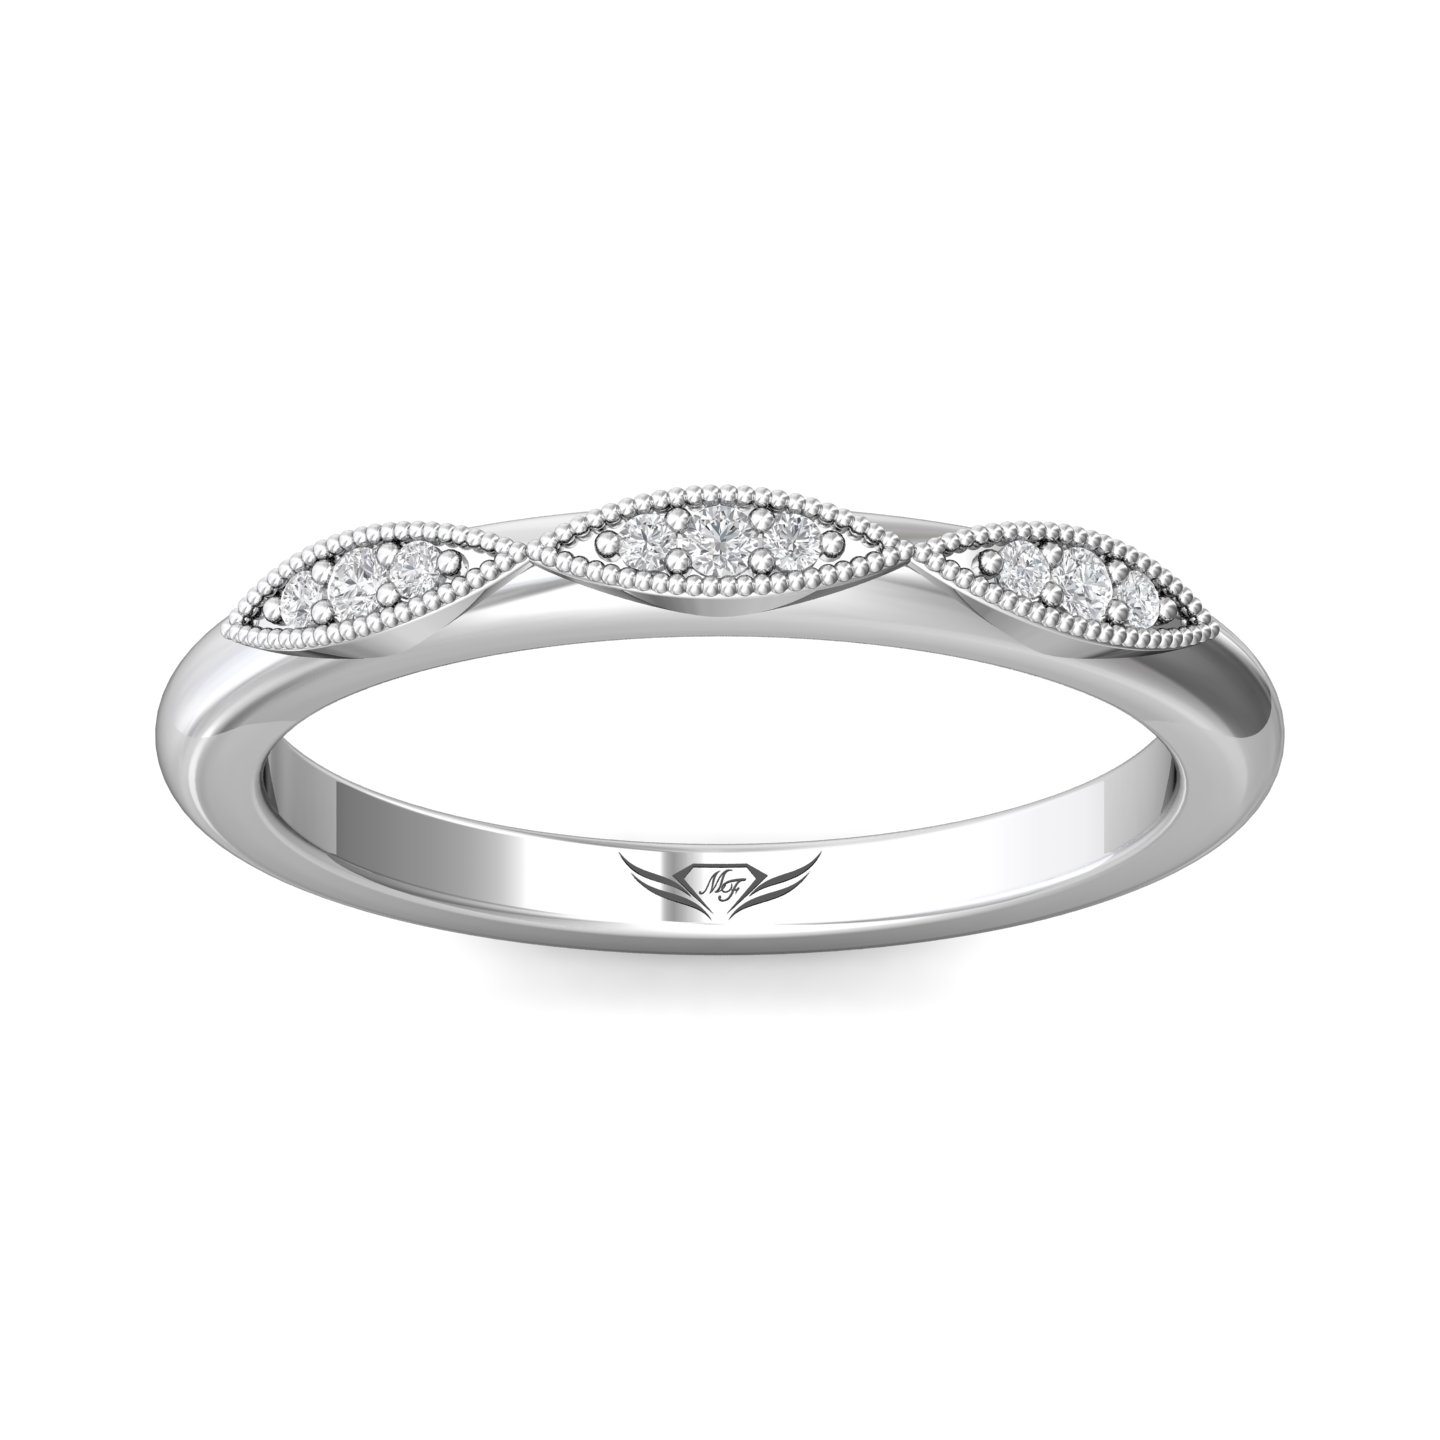 14K White Gold FlyerFit Micropave Bead Set Wedding Band Image 3 Grogan Jewelers Florence, AL